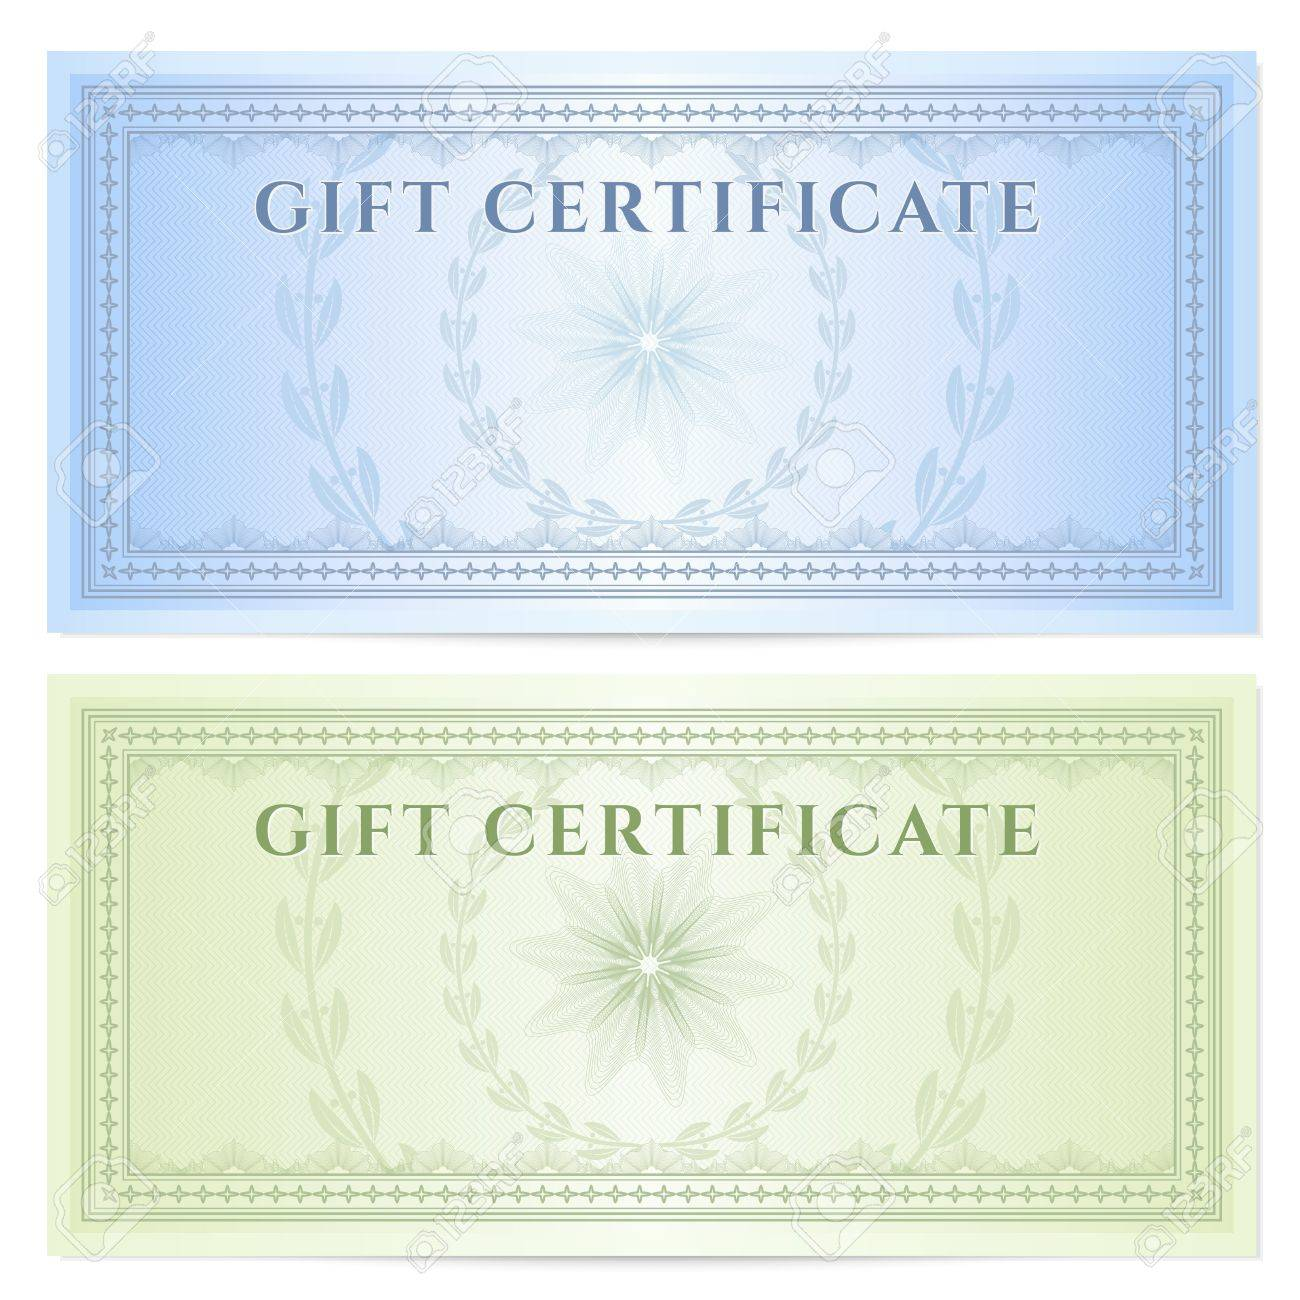 Marvelous Gift Certificate Voucher Template With Guilloche Pattern Watermarks And  Border Background Design For Coupon, Banknote Awesome Design